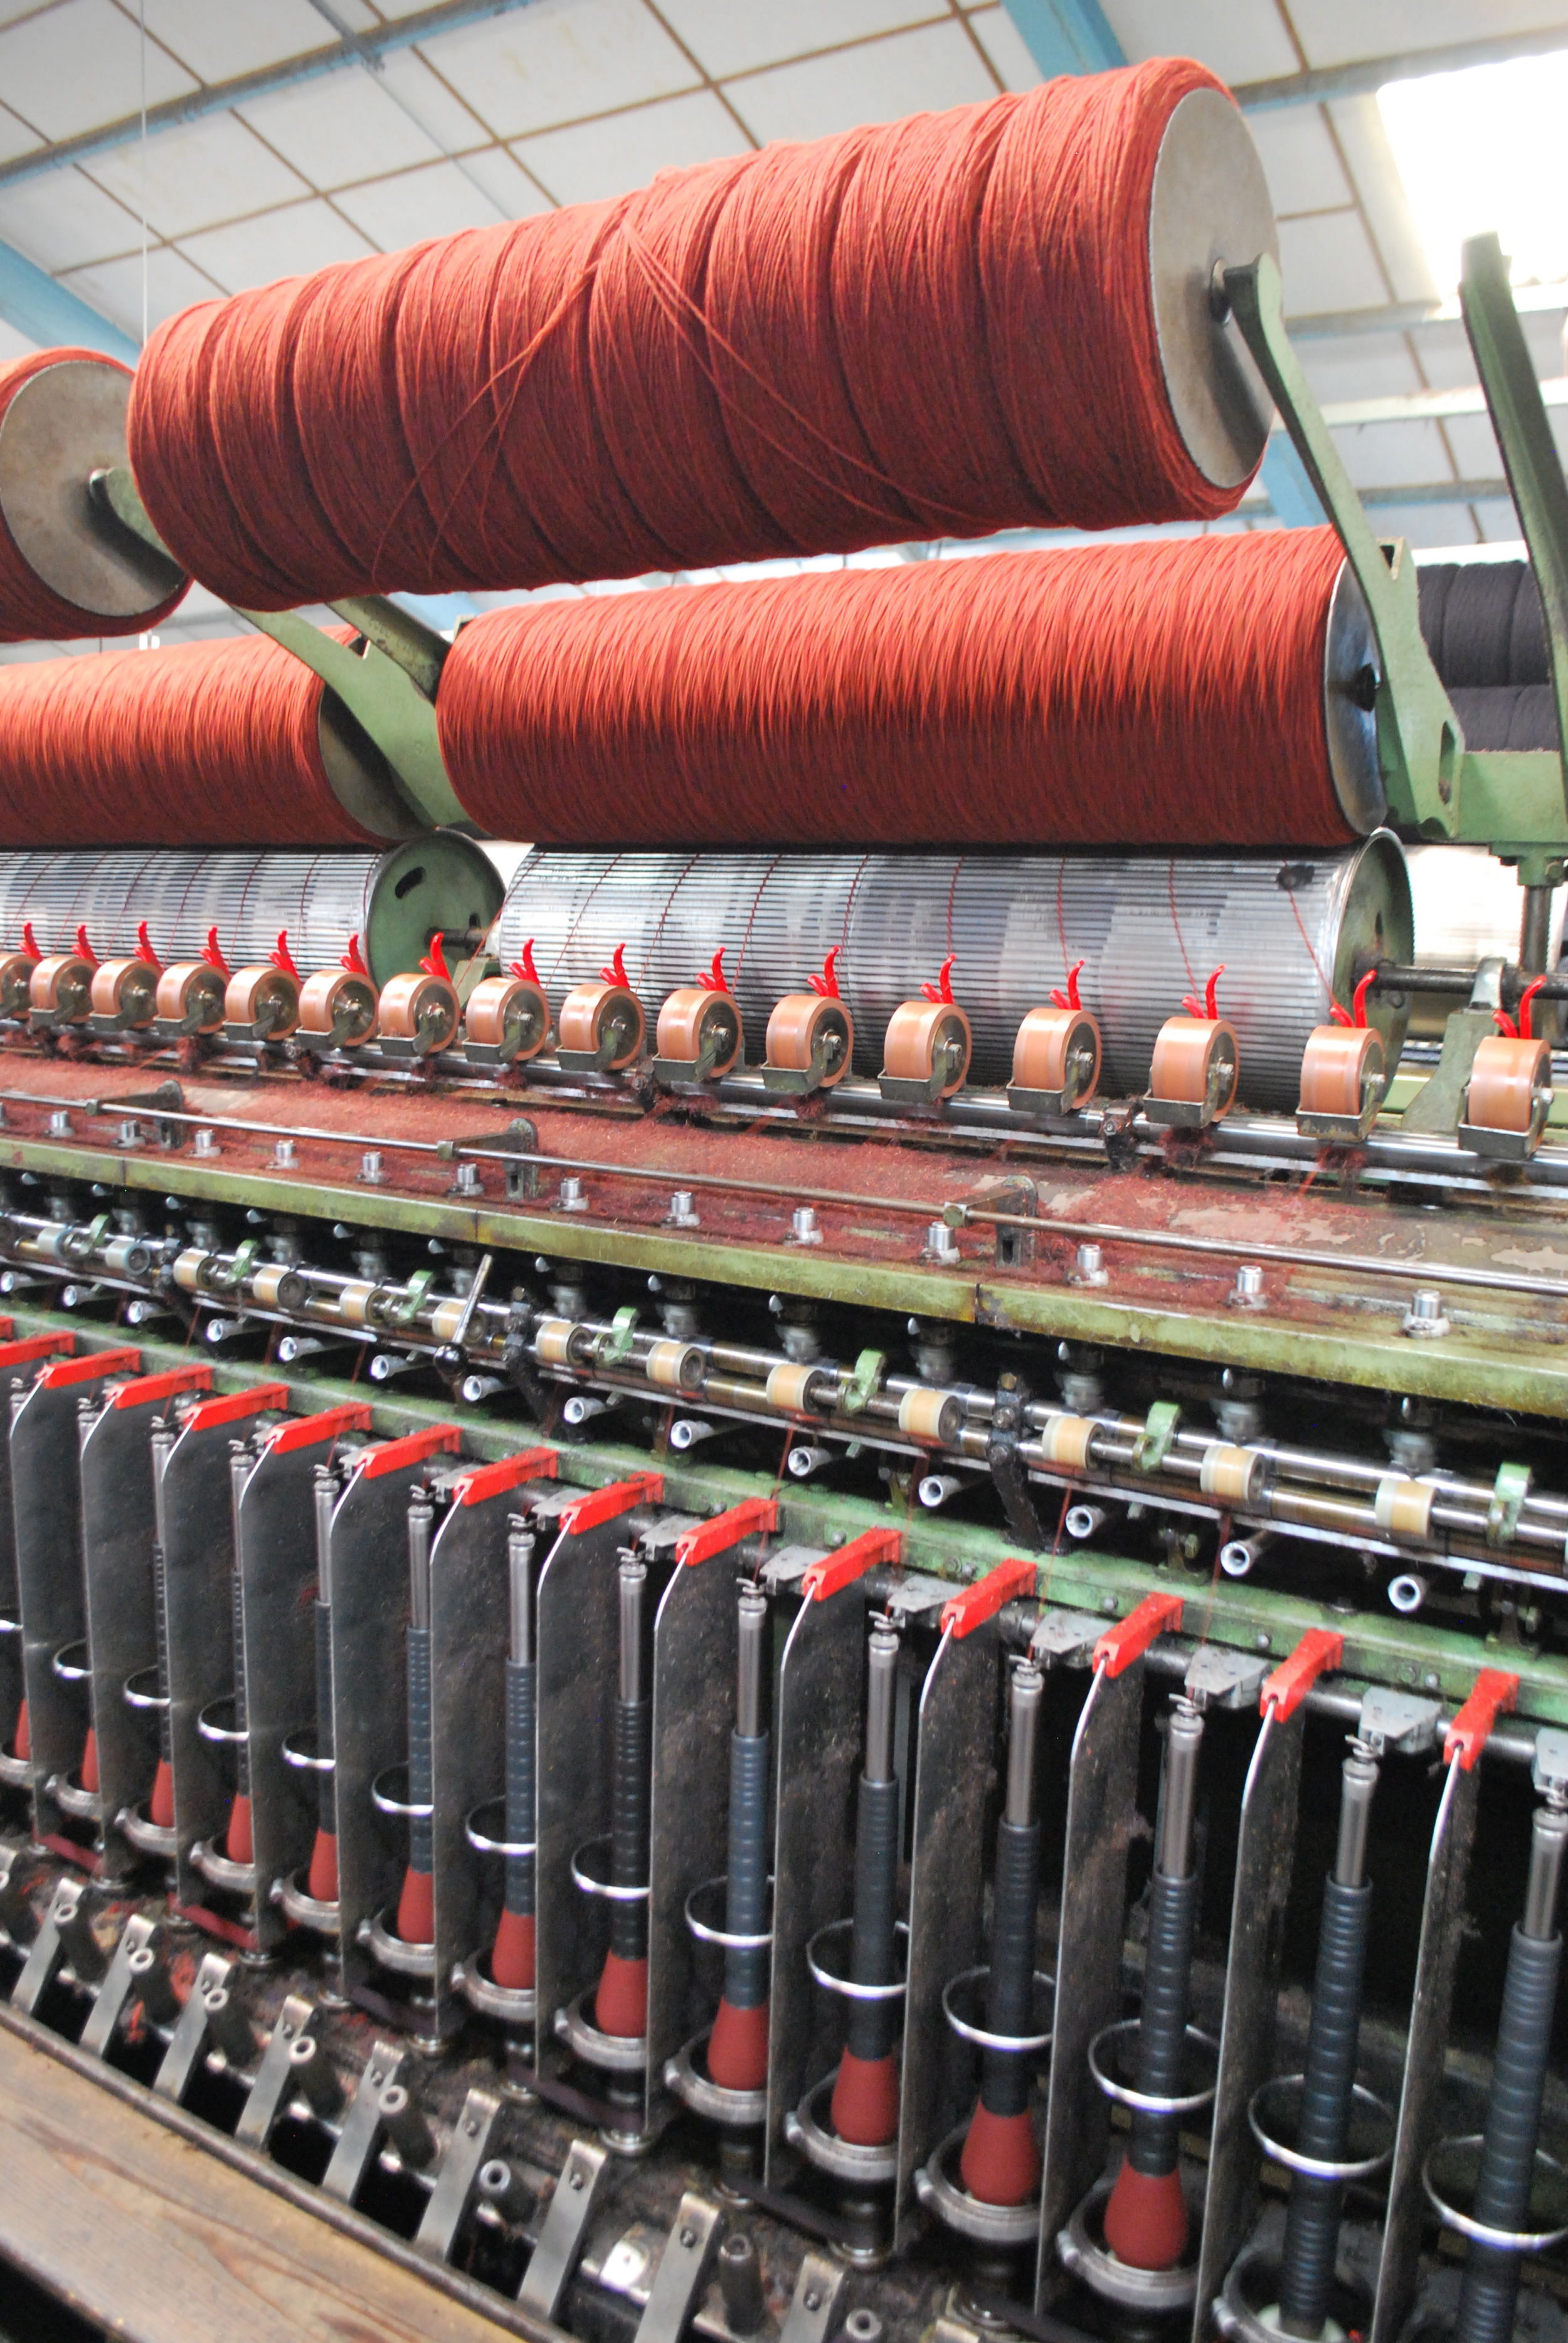 The yarn is being spun onto the bobbins.